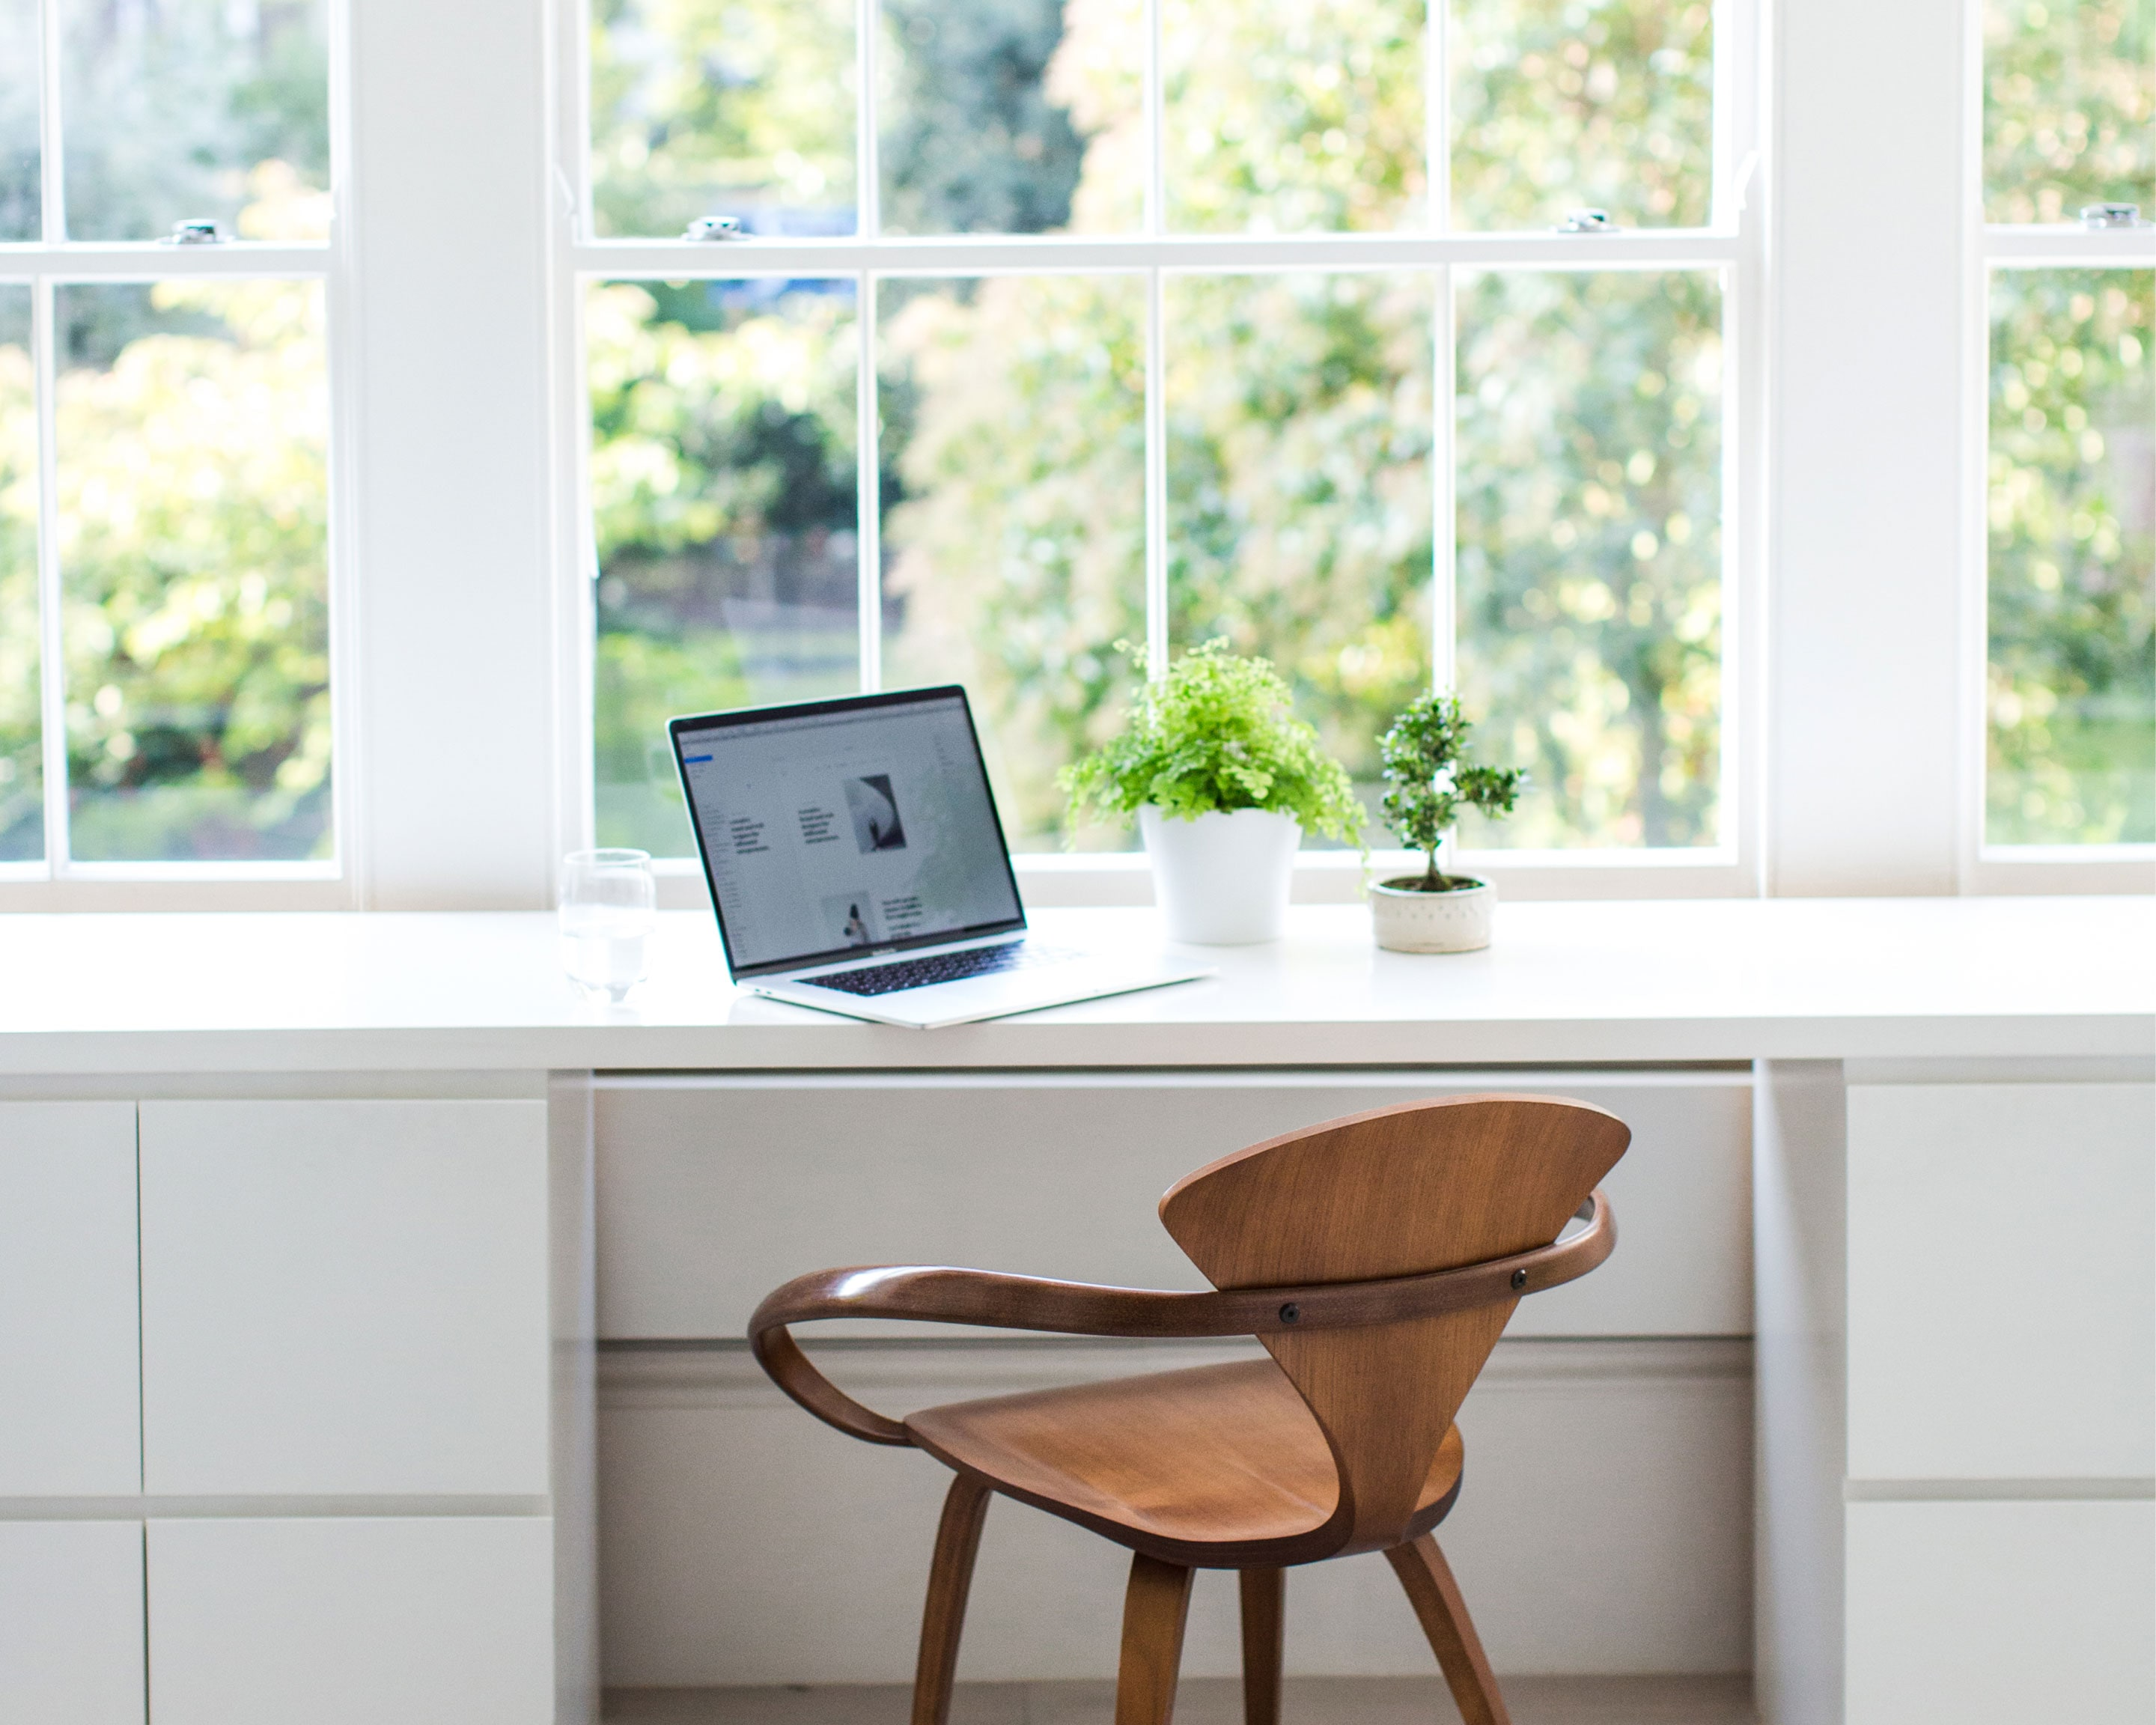 Jack Watkins light filled, bright white office space and desk with minimal styling, plants and MacBook